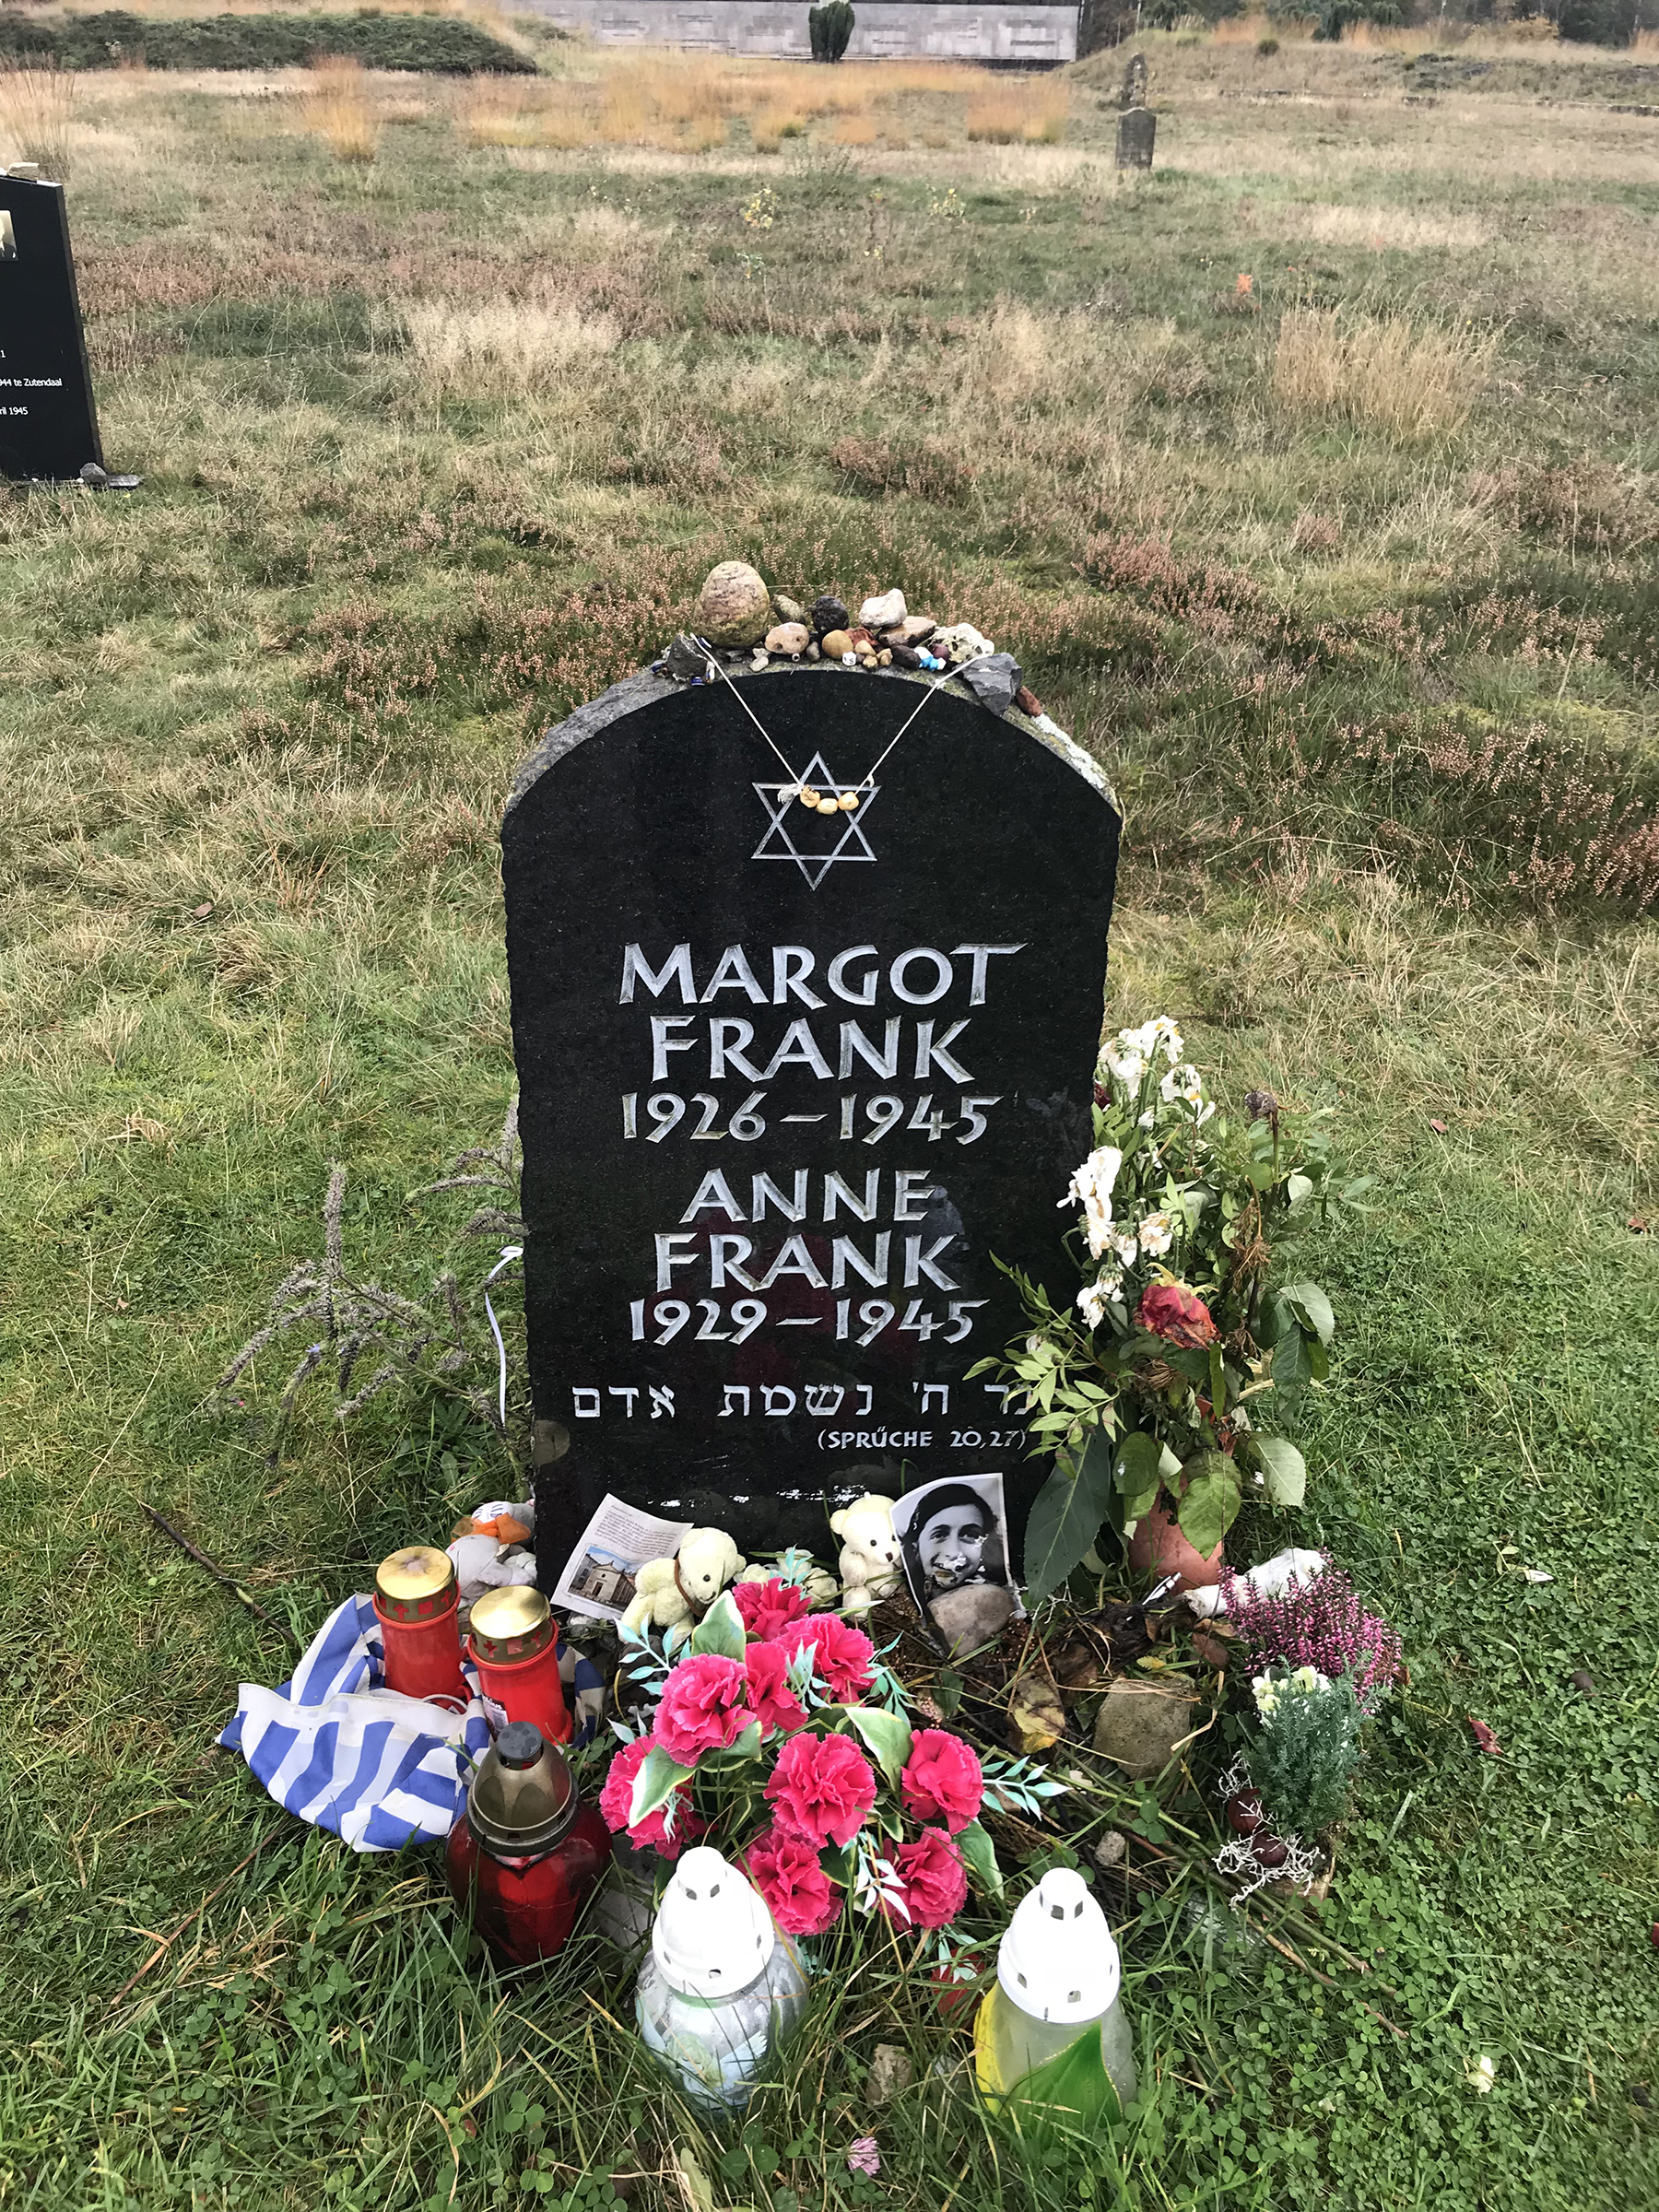 Margot and Anne Frank's tombstone.